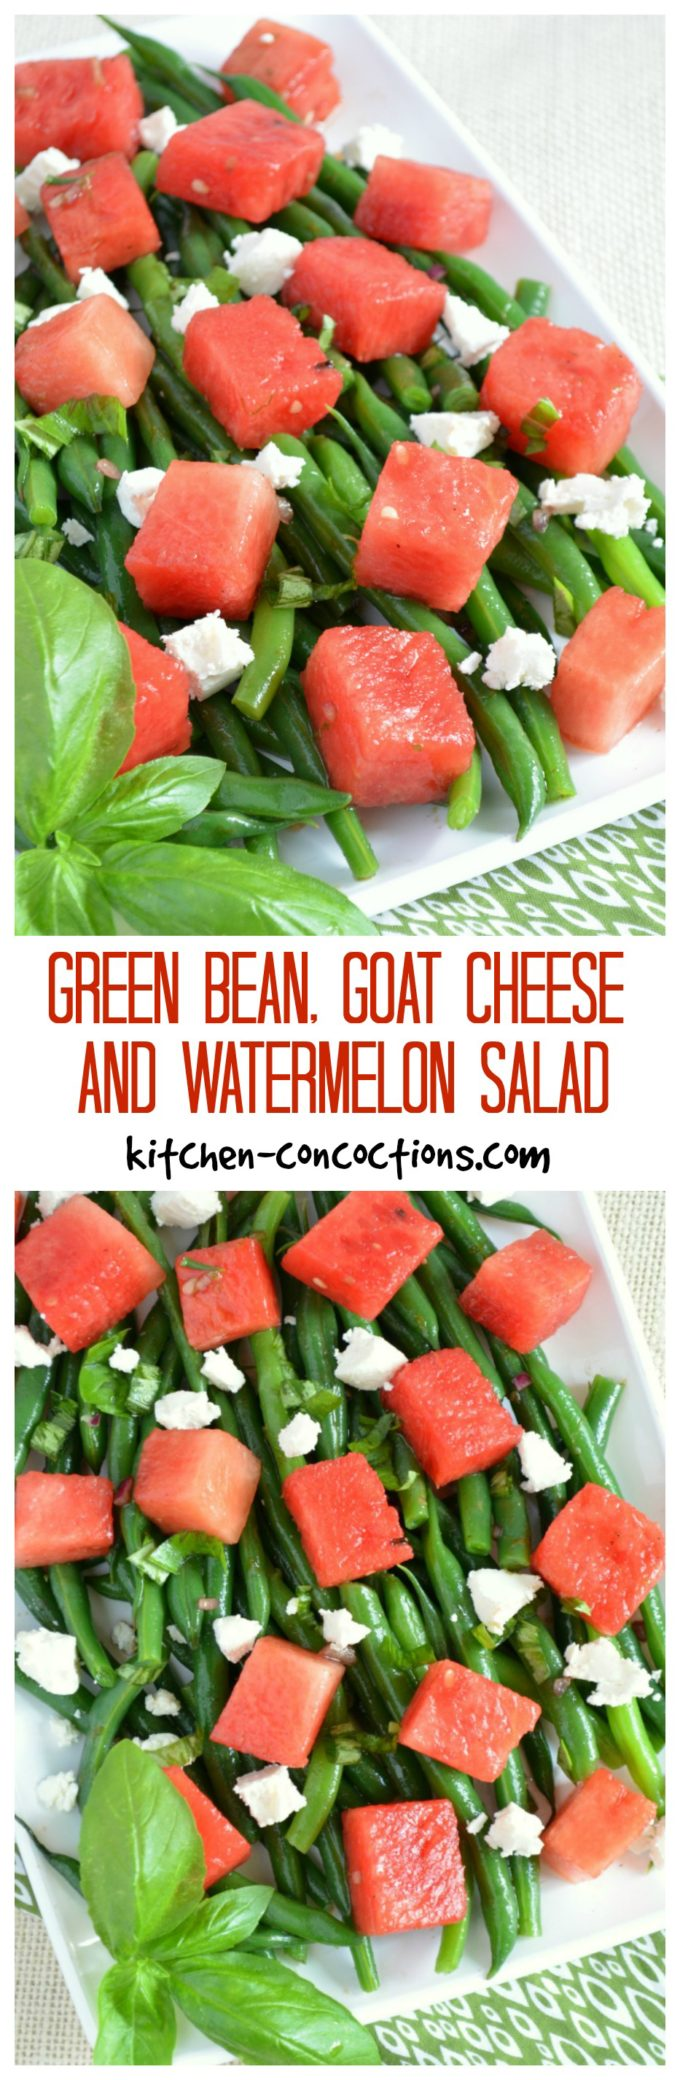 Green Bean, Goat Cheese and Watermelon Salad